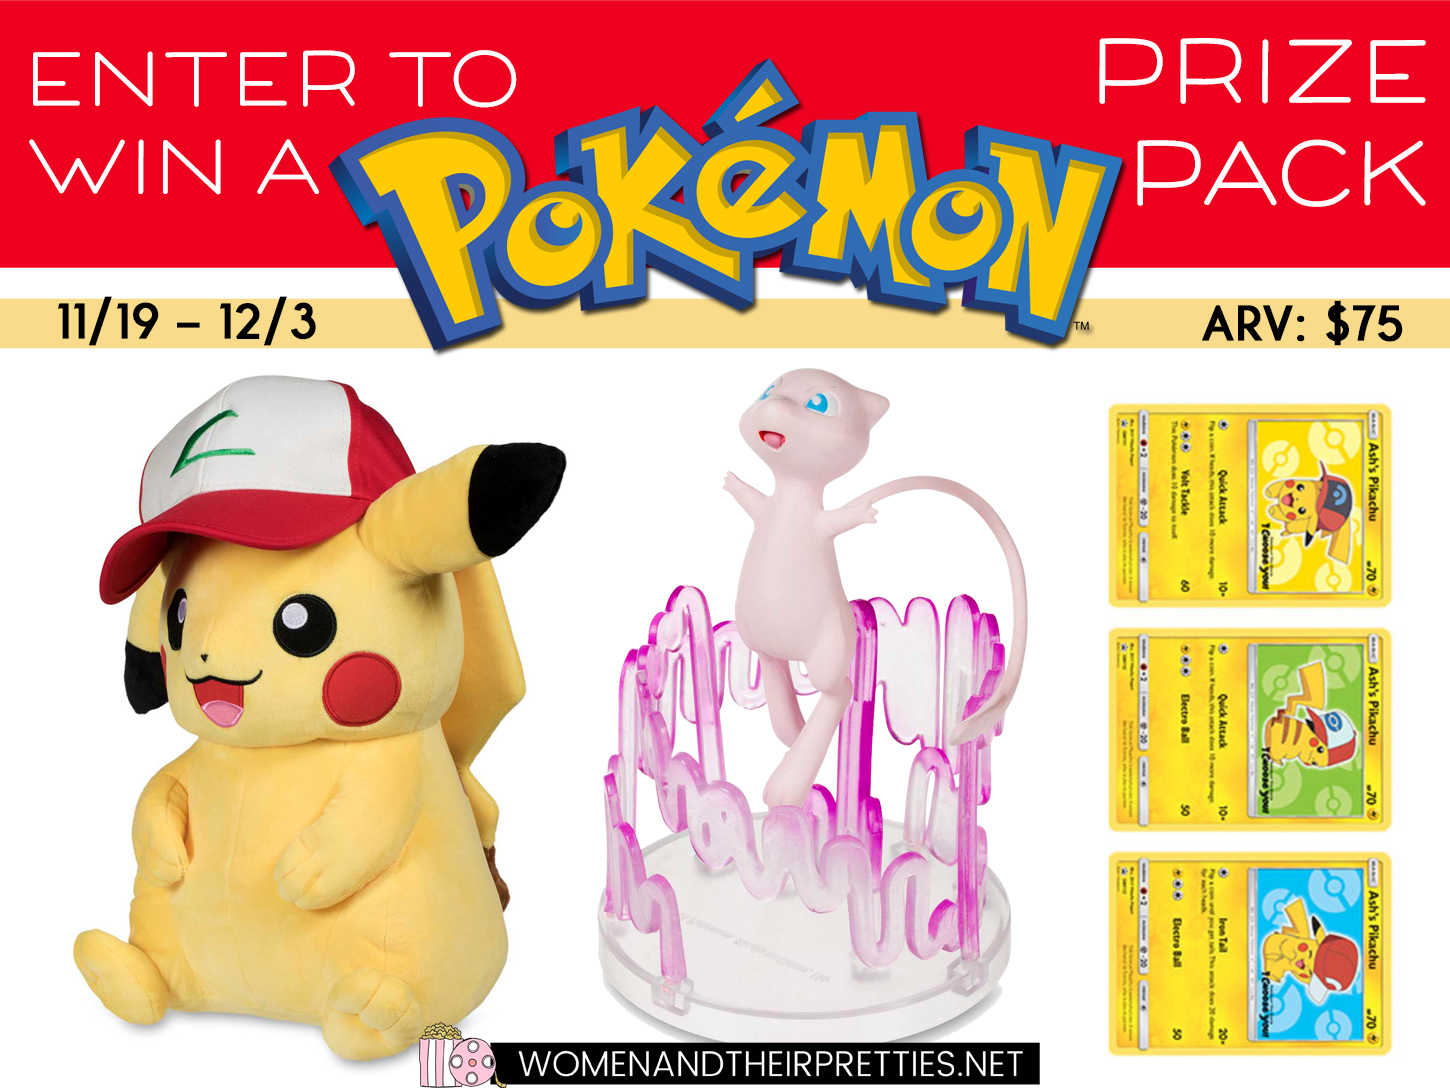 Enter for your chance to win aPokemon Trainer Prize Pack that includes aLarge Pokemon plush,Pokemon Gallery Figure, andPokemon Trading Cards